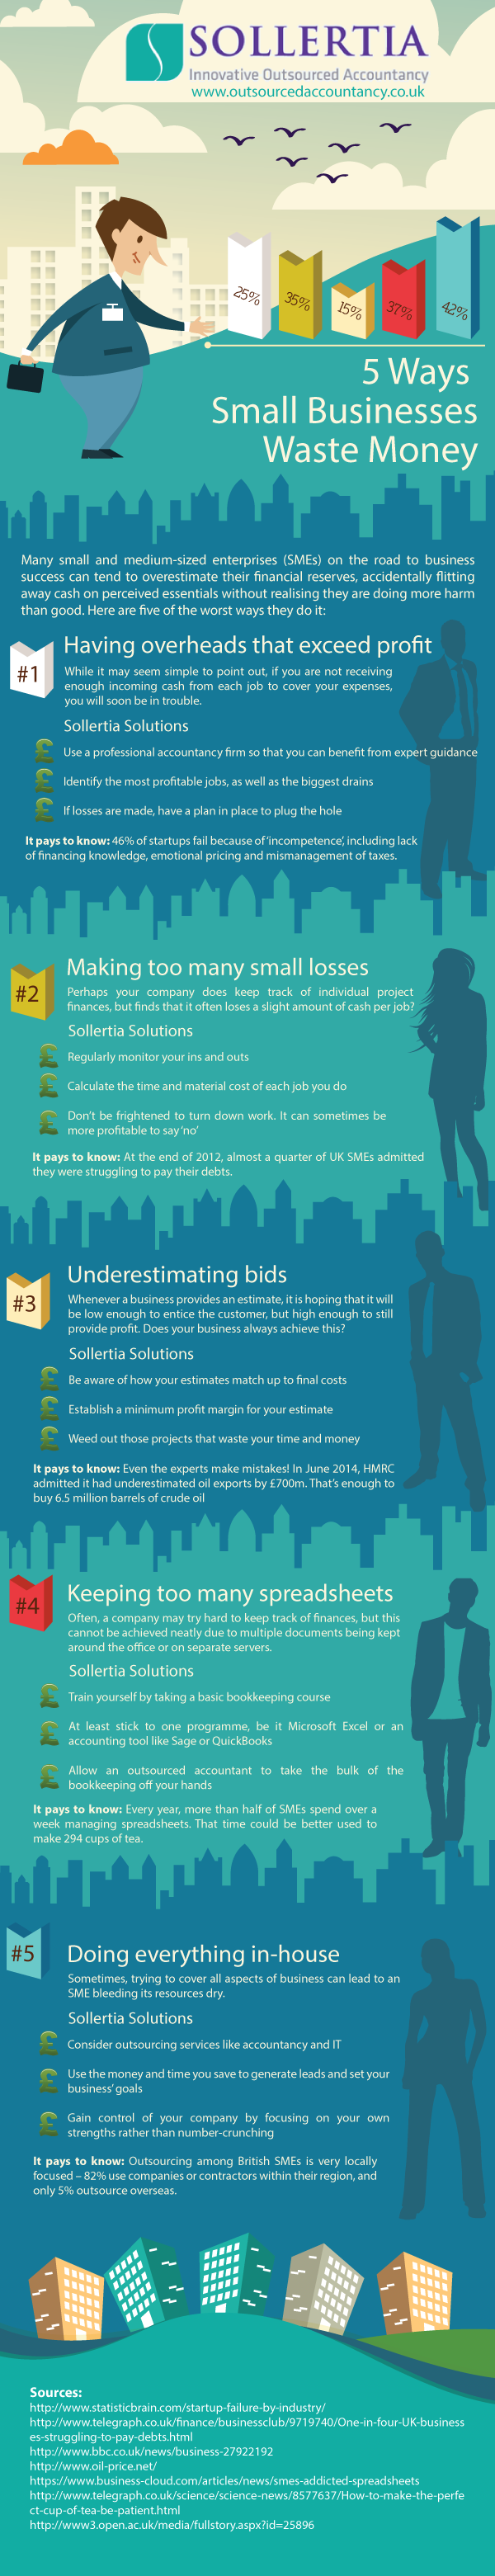 Five ways small businesses waste money Infographic